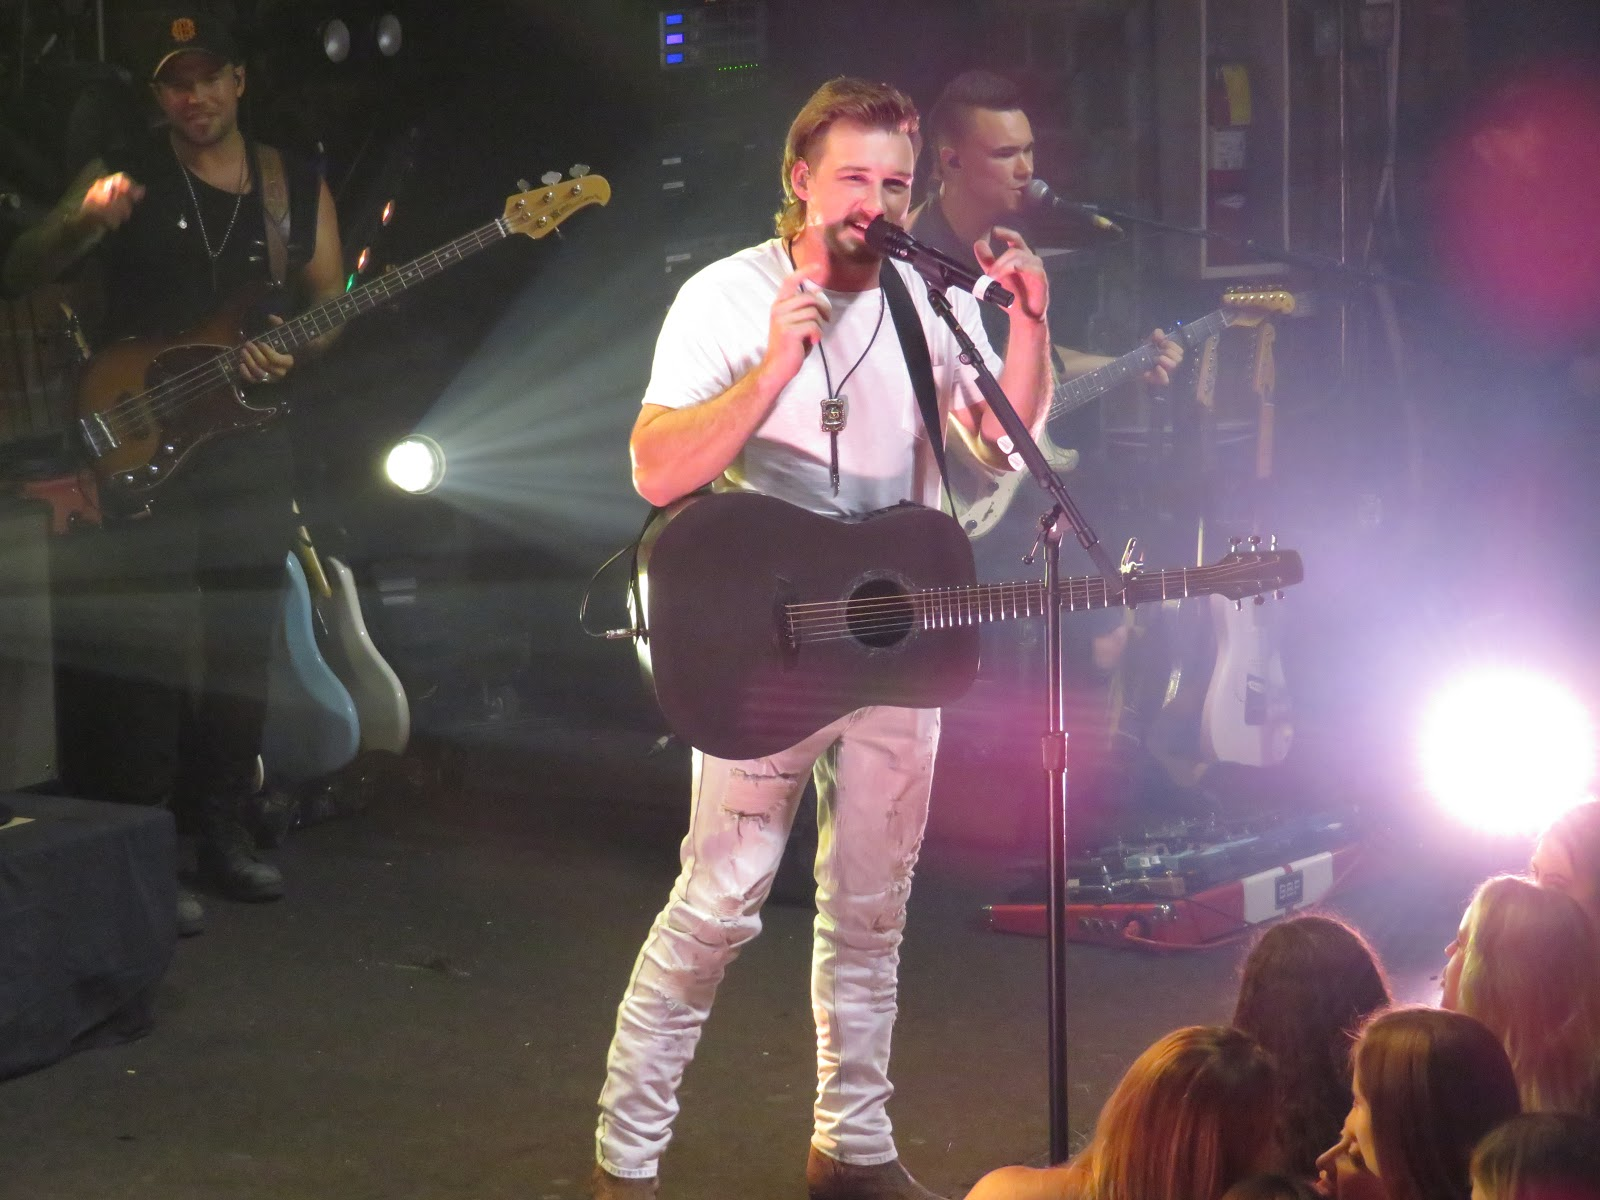 Morgan Wallen Seeks Only Sports Fun During Highly Charged